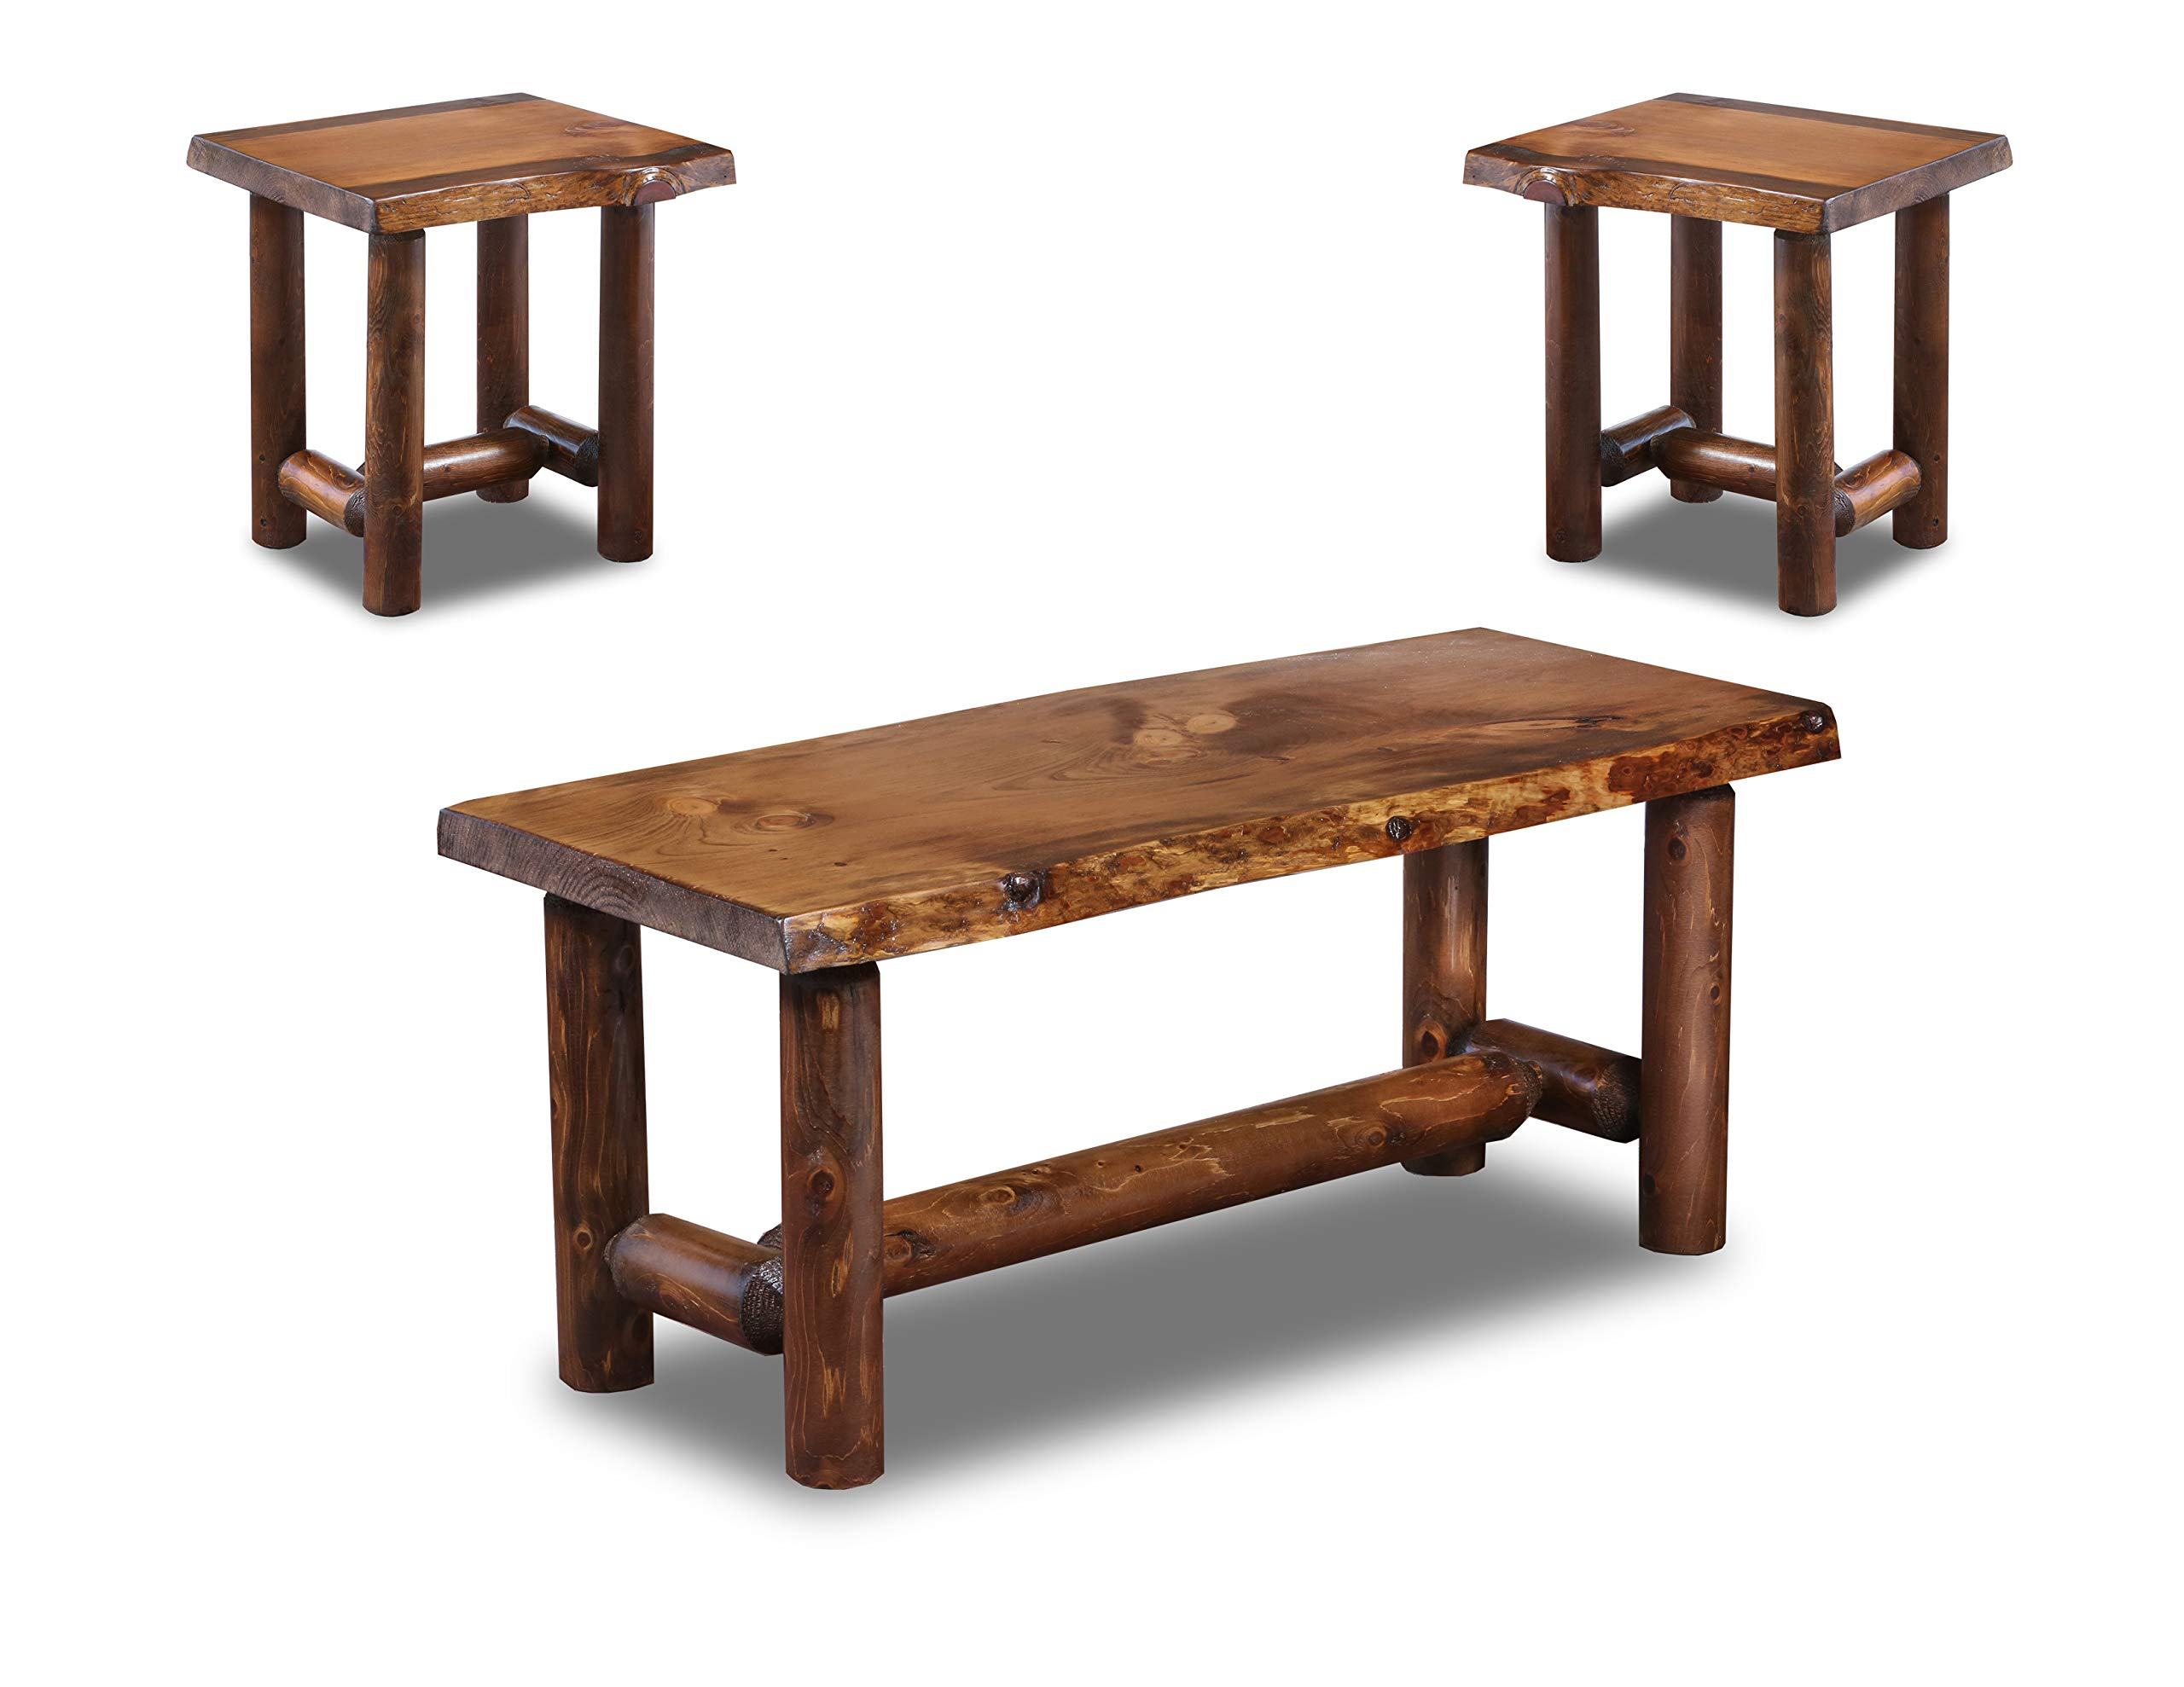 Rustic Log Coffee and End Table Set Pine and Cedar (Honey Pine) by Southern Rustic Logwerks